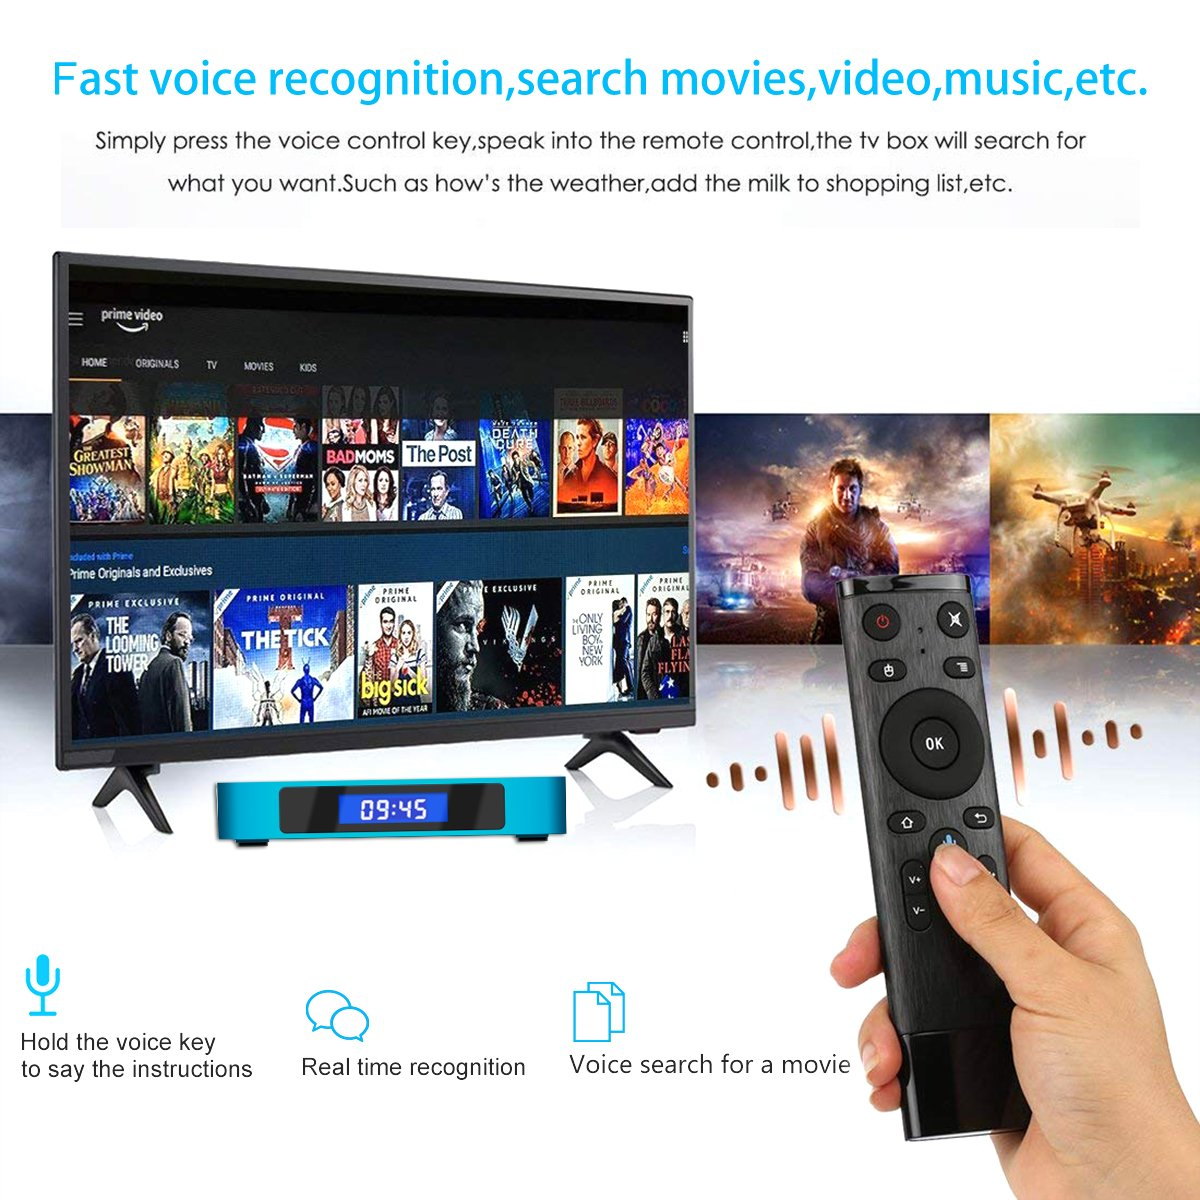 Android 8.1 TV Box with Voice Remote, RK3328 Quad Core 64bit 2GB DDR3 16GB eMMC Memory Smart TV Box with Bluetooth 4.0 WiFi Ethernet HDMI HD 4K Media Player Set Top Box by YAGALA (Image #2)